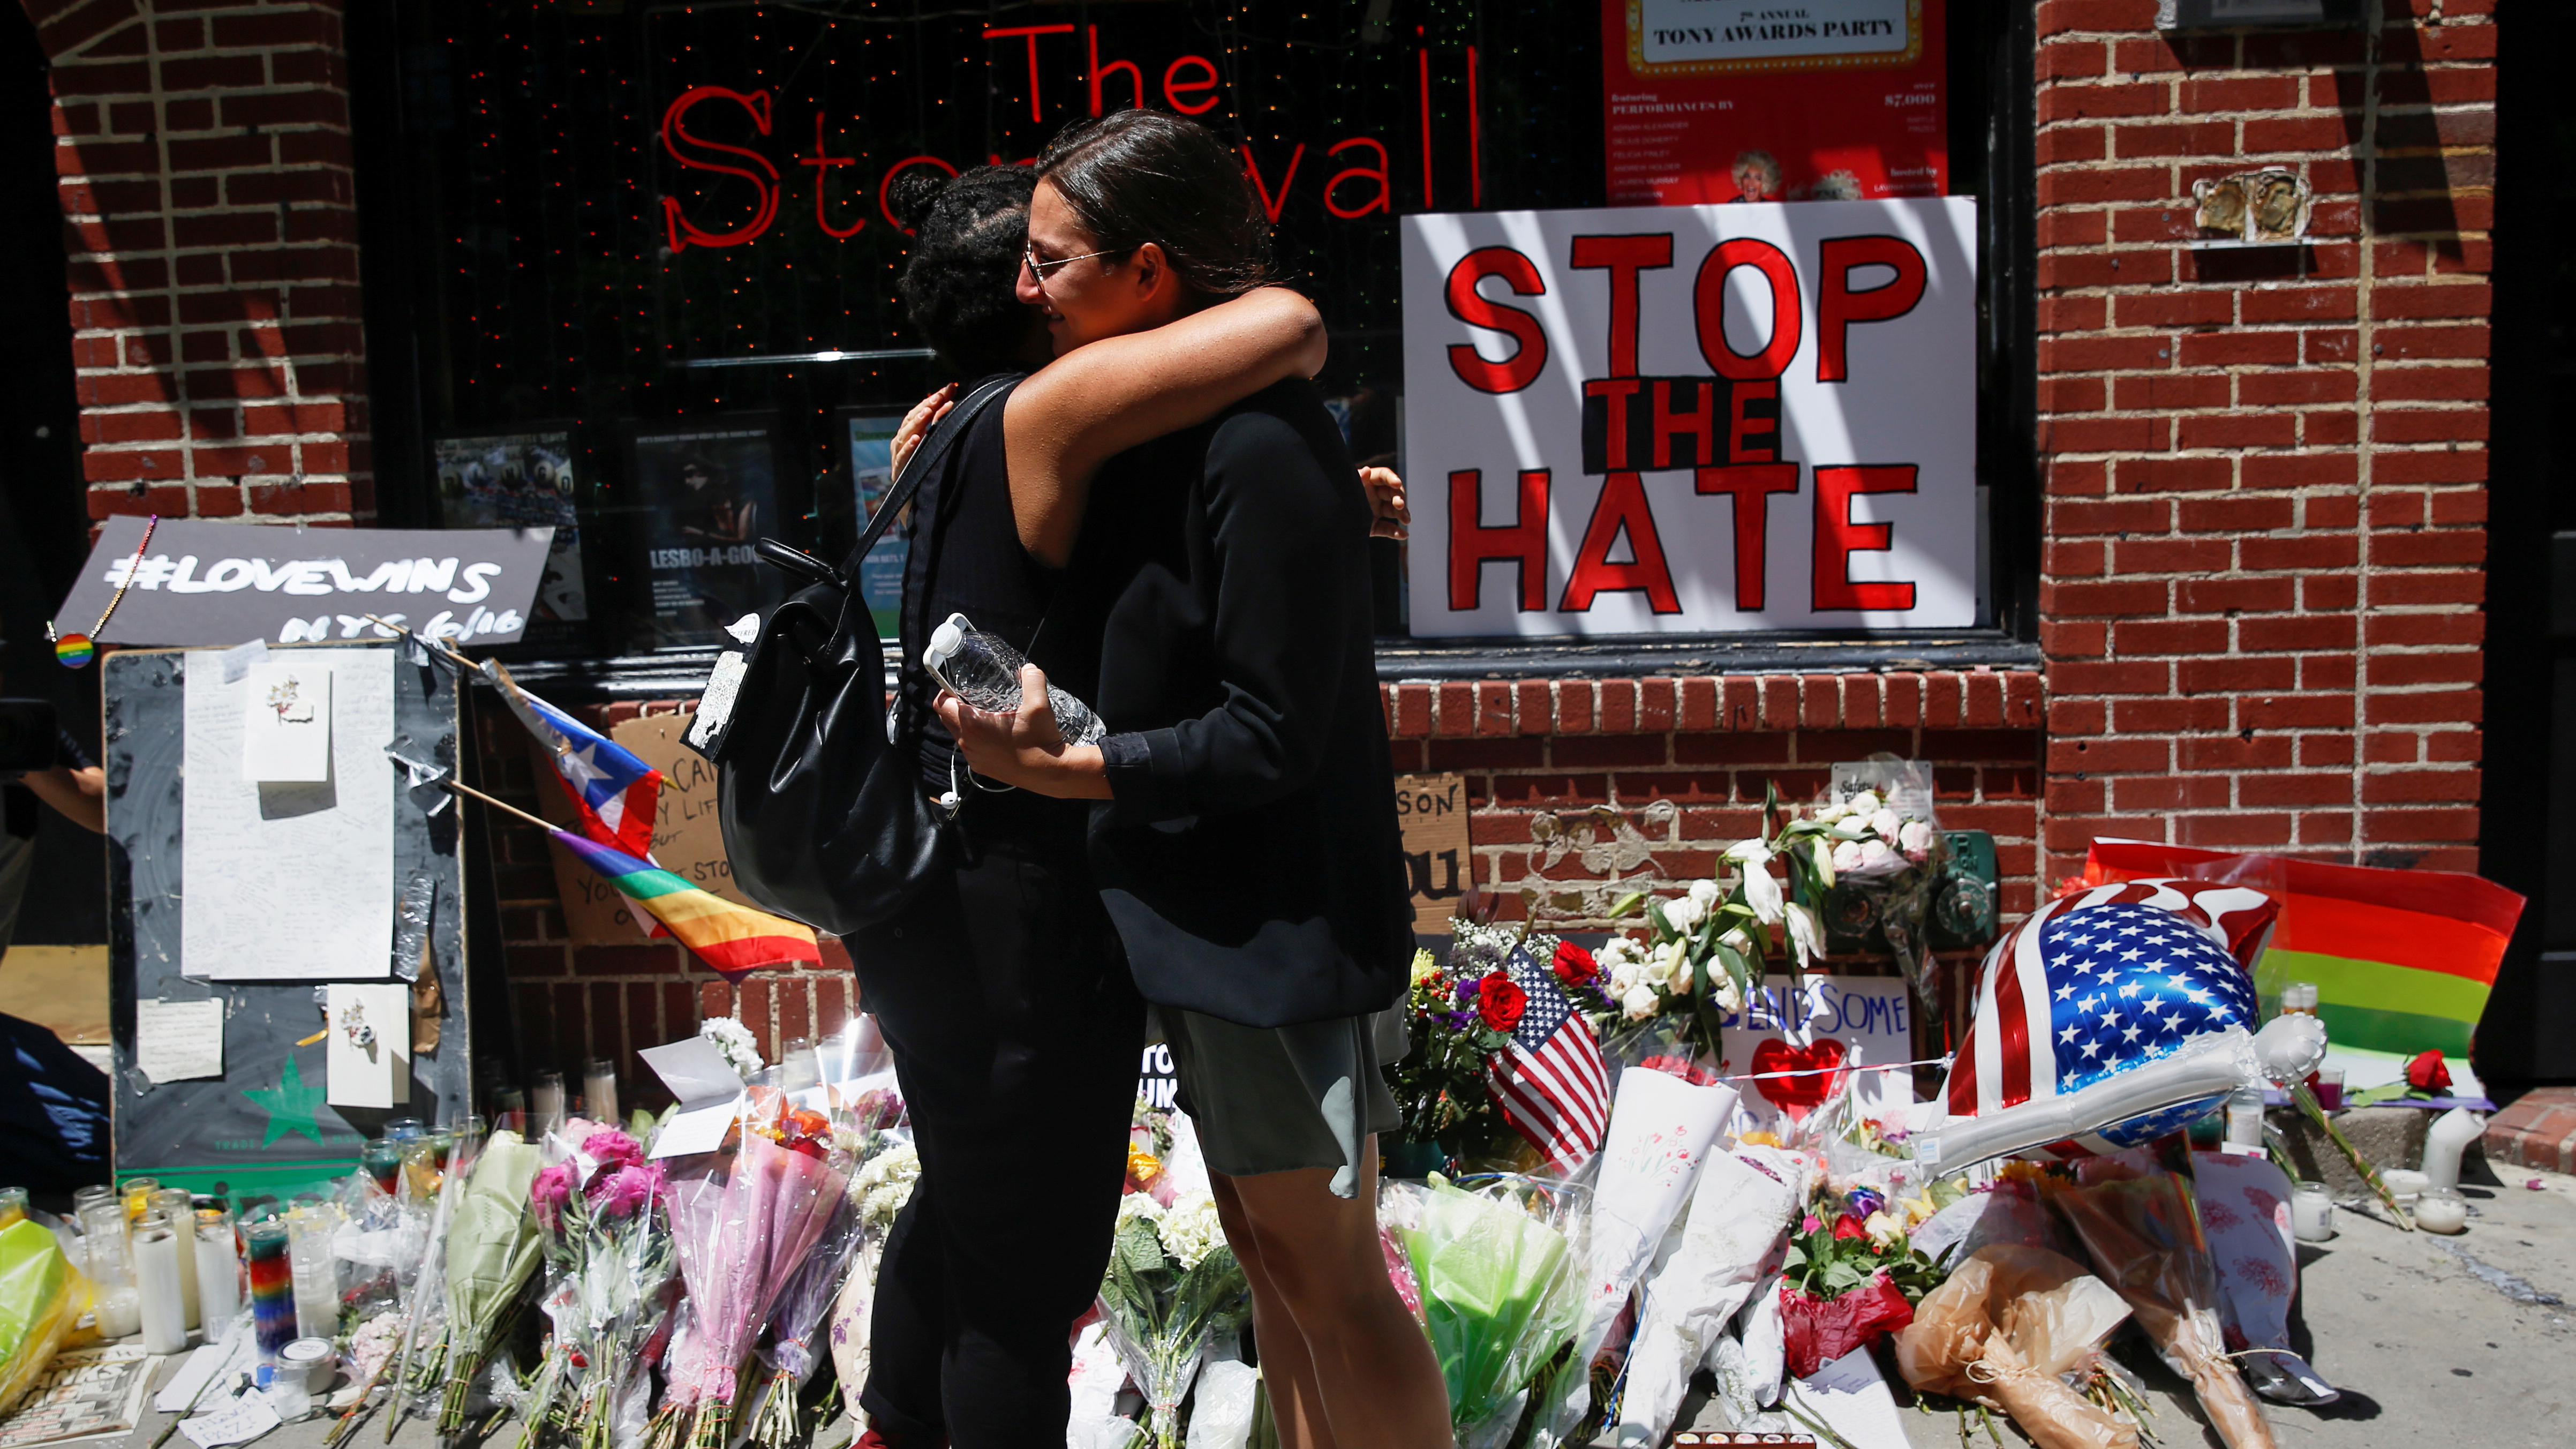 Matti Mejia and Shaina Roberts embrace after laying flowers at memorial outside The Stonewall Inn remembering the victims of the Orlando massacre in New York